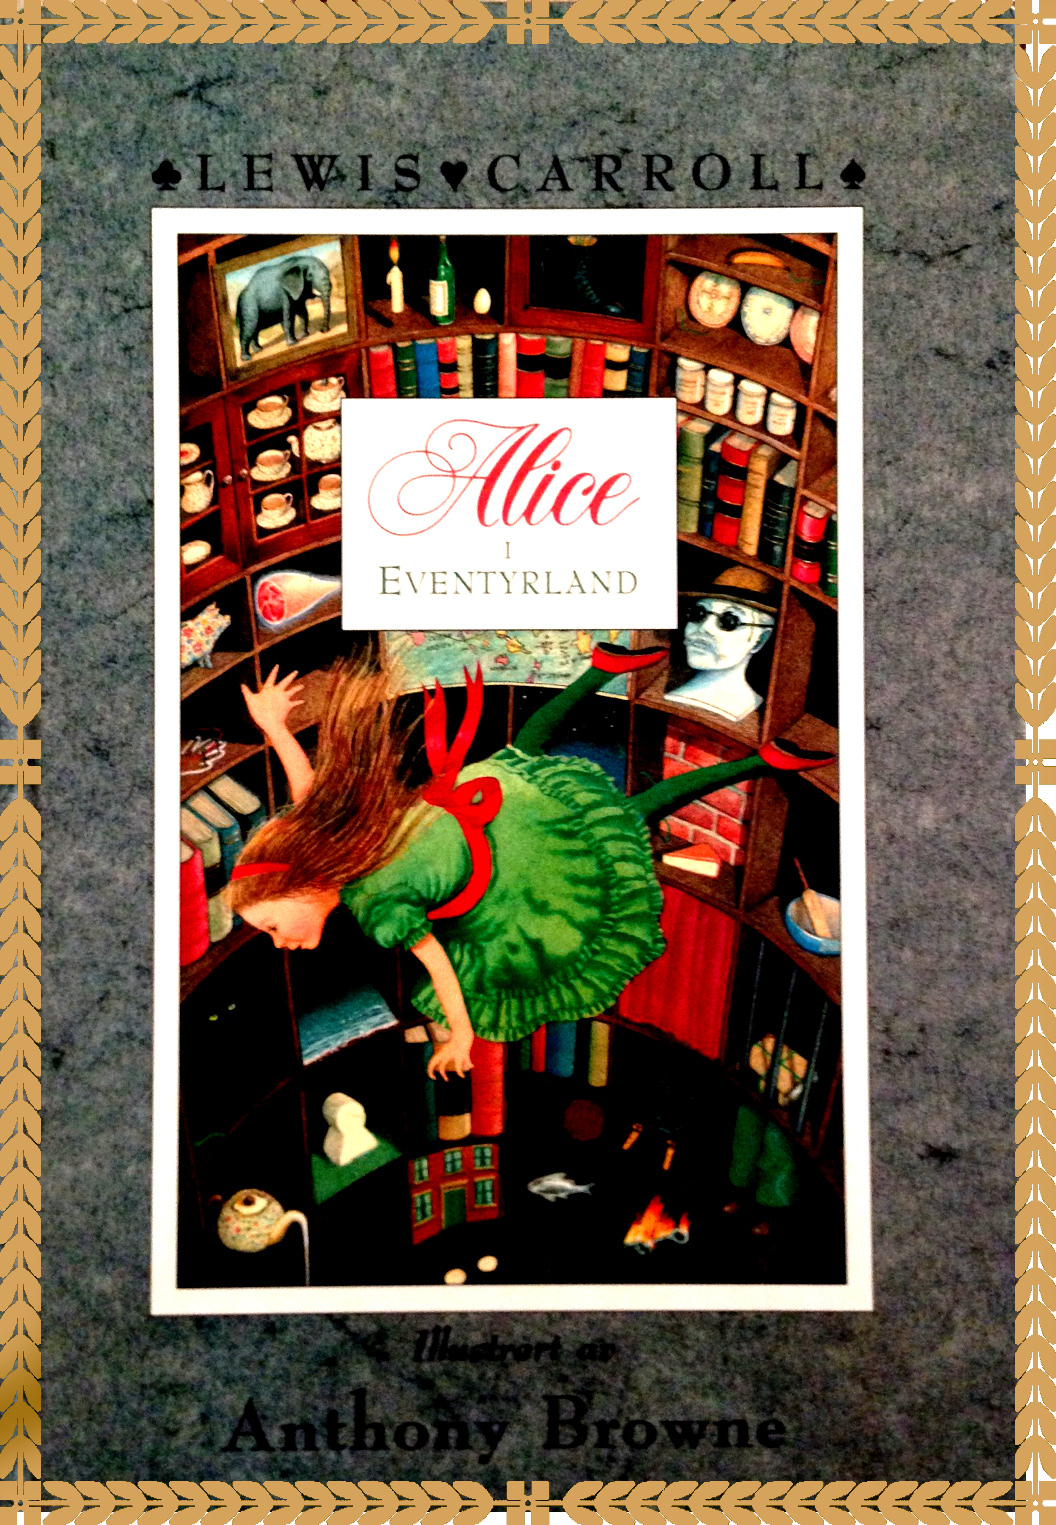 Alice Harikalar Diyarında -Anthony Browne-